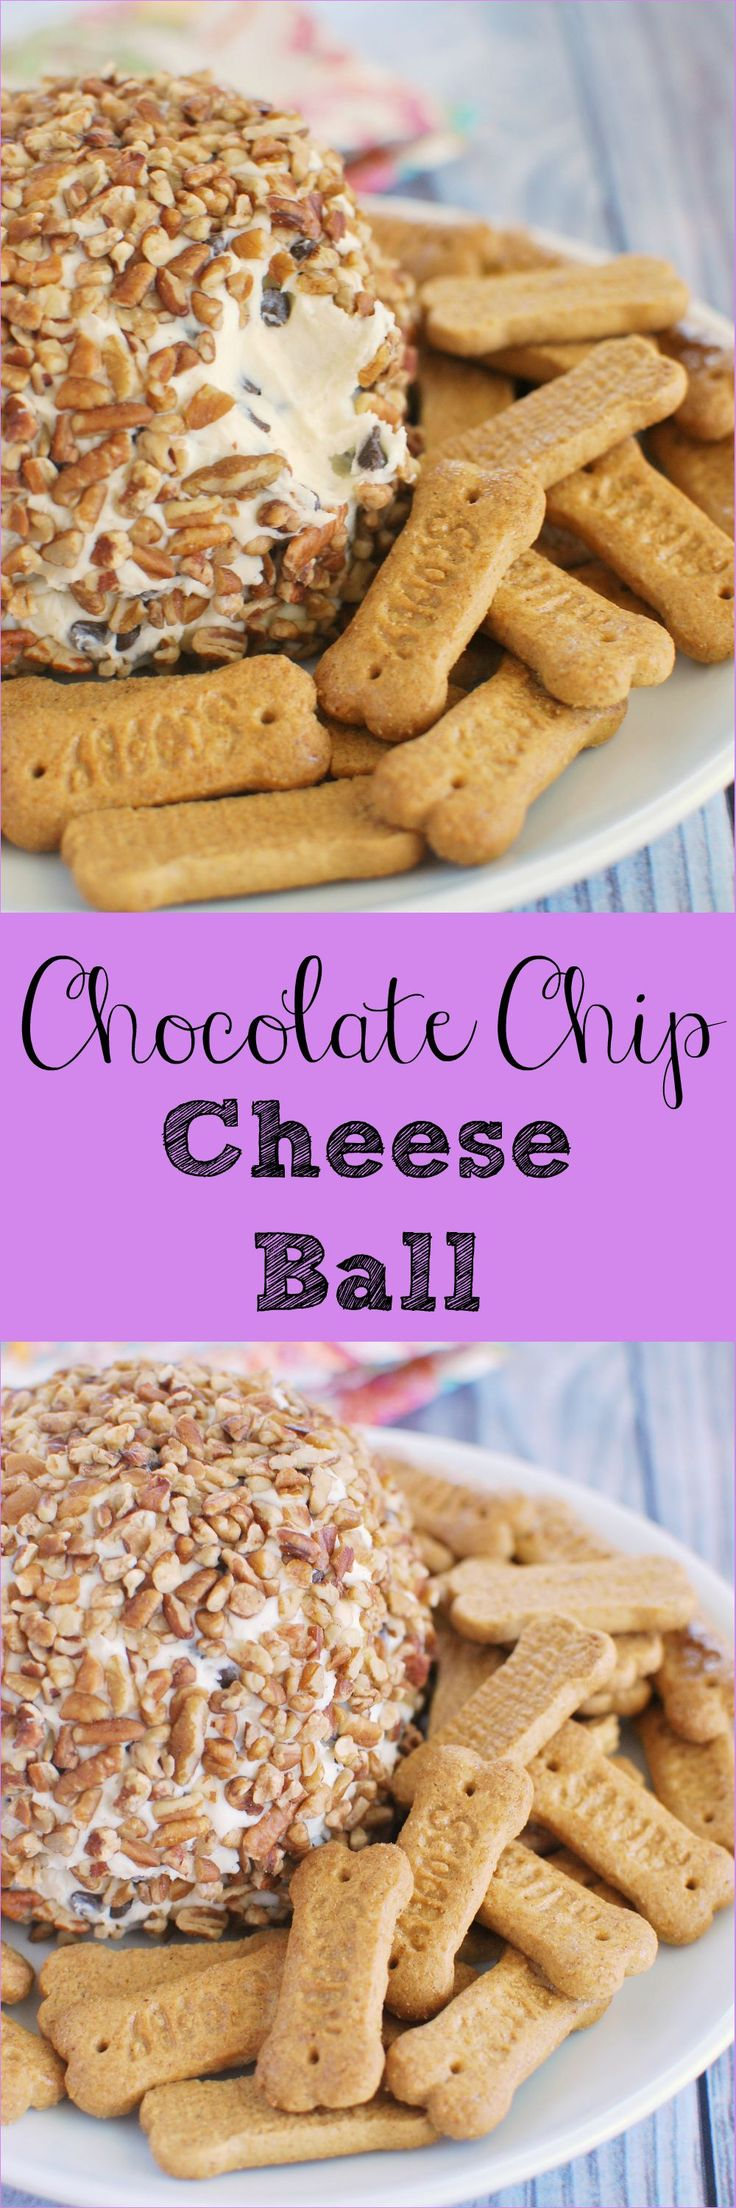 Chocolate Chip Cheese Ball - the most delicious dessert cheese ball! Serve with graham crackers for an irresistible snack!